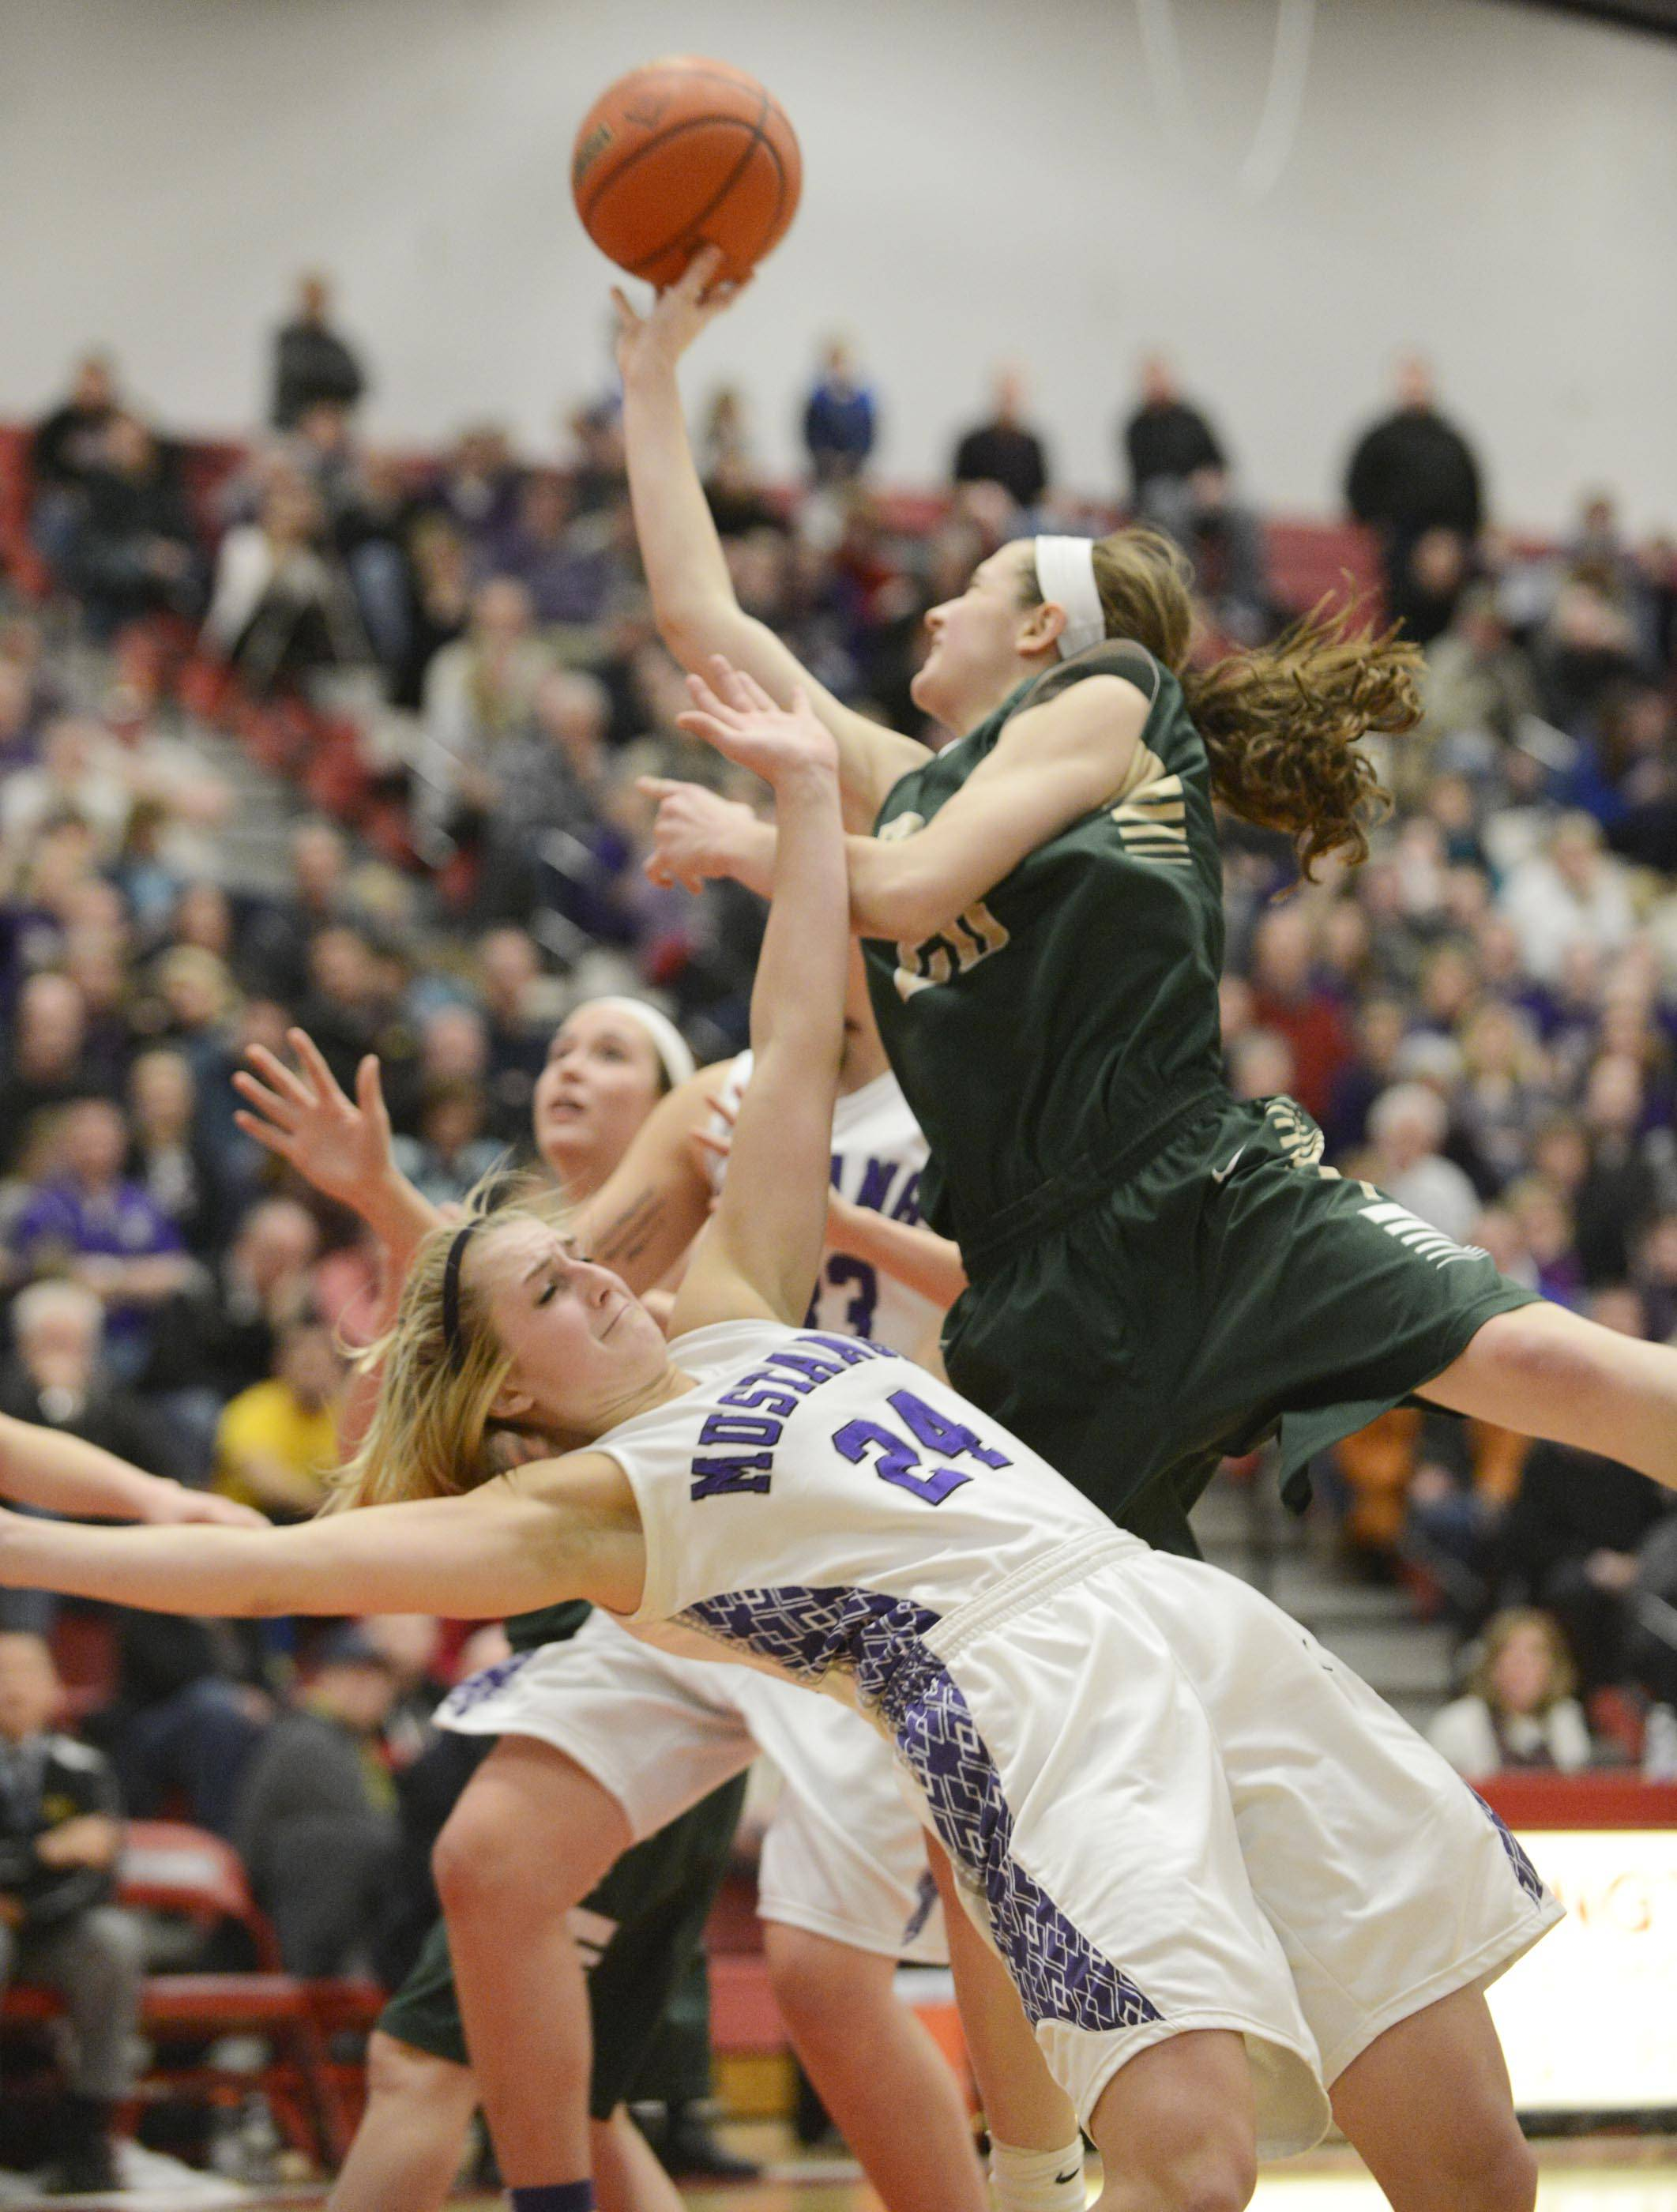 Fremd's Haley Gorecki shoots over Rolling Meadows' Alexis Glasgow on Thursday at Barrington. A foul was called on Glasgow.